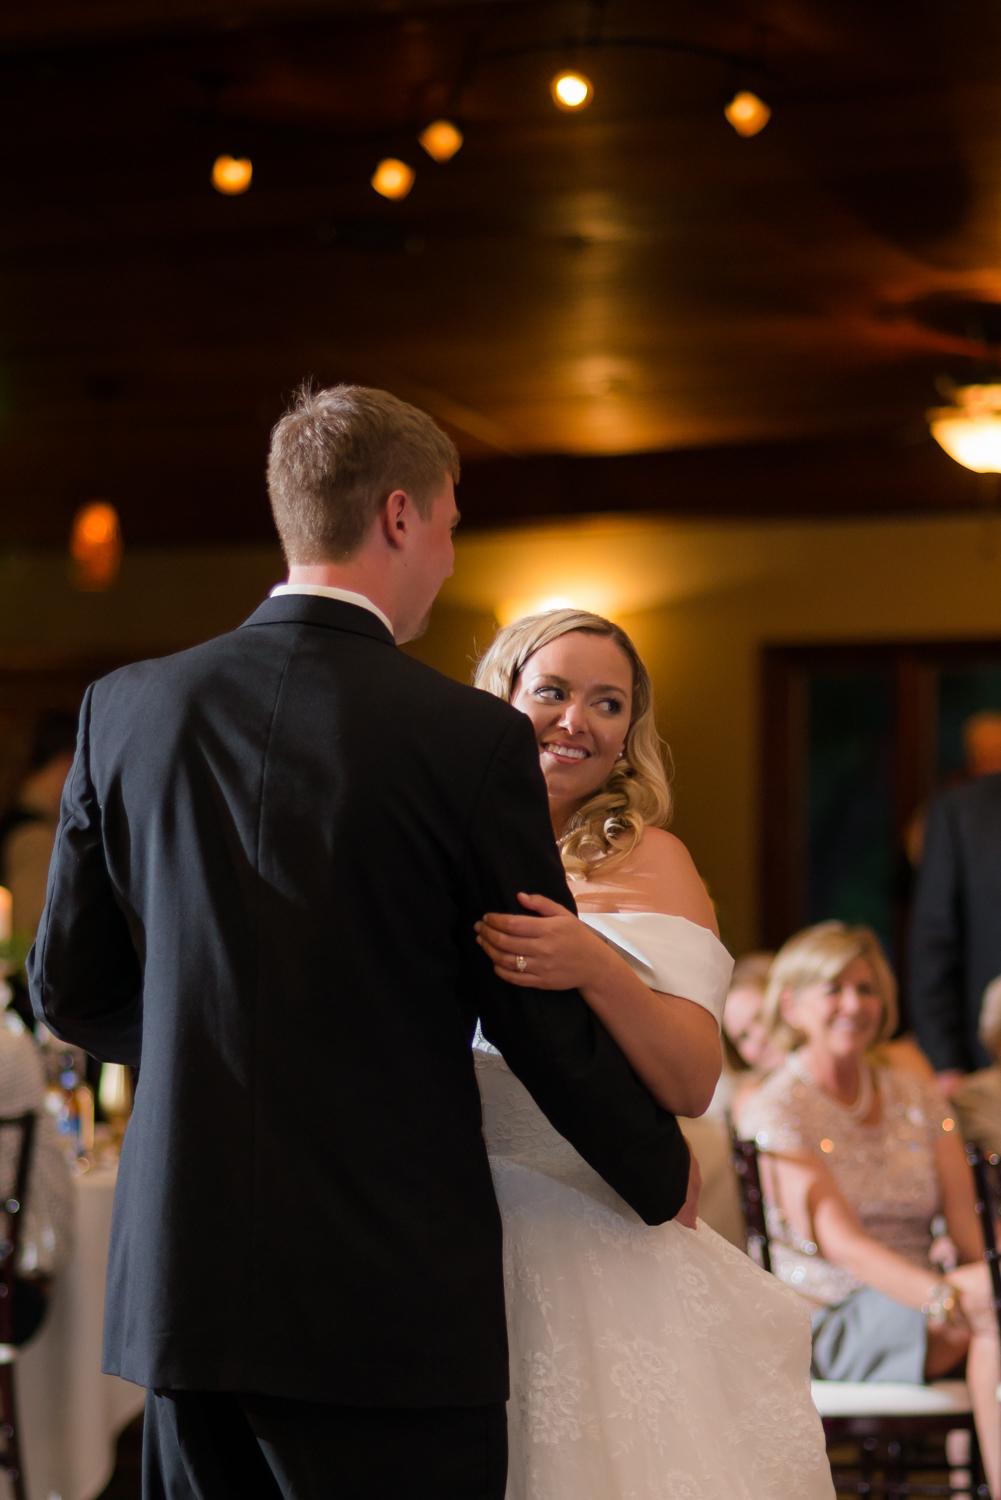 Bolla_Photography_St_Louis_wedding_photographer-0509.jpg